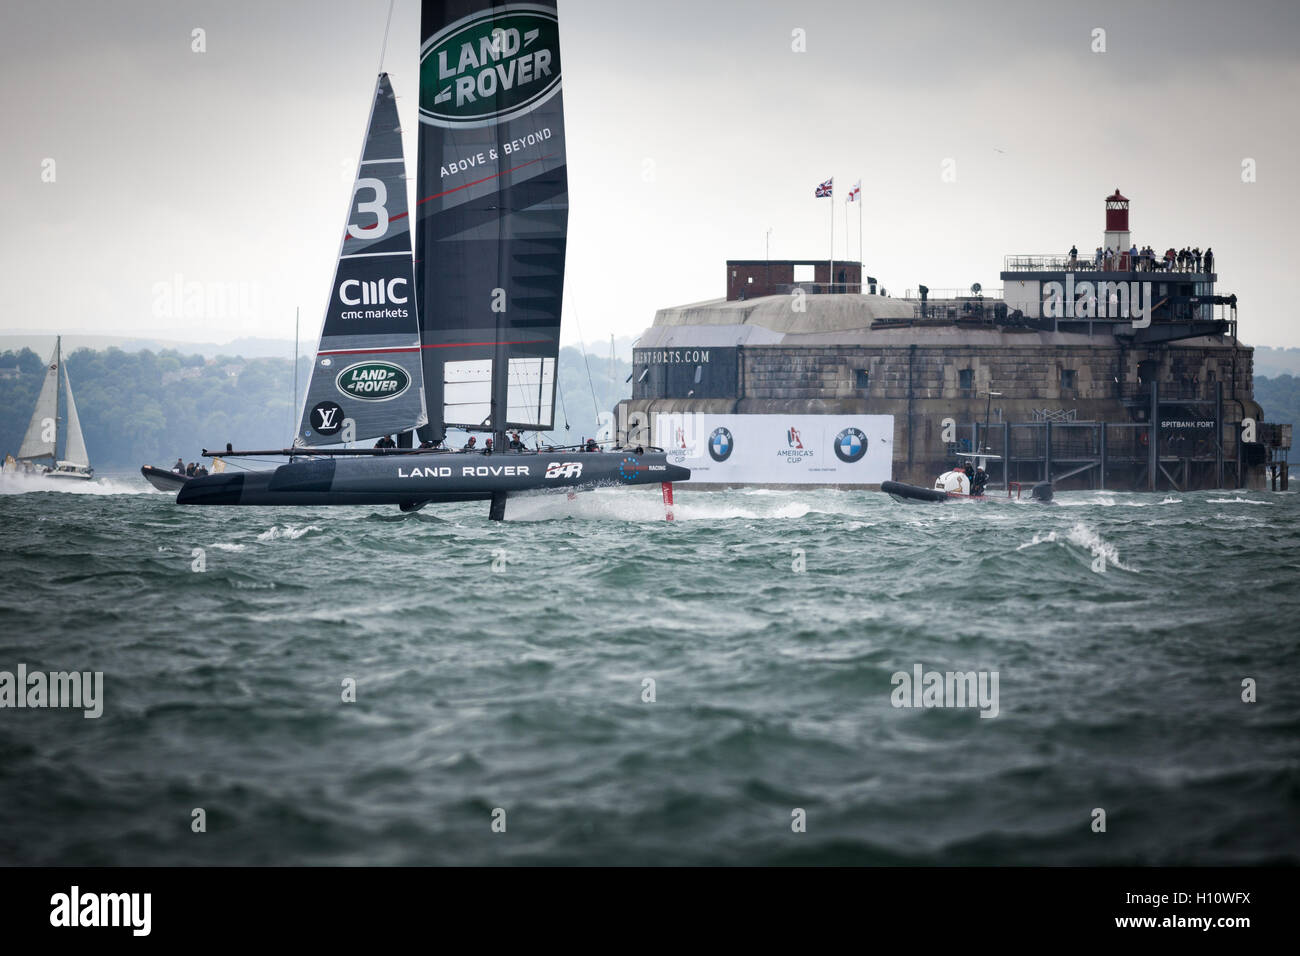 Land Rover BAR win the 2016 America's Cup World Series event held in Portsmouth - Stock Image